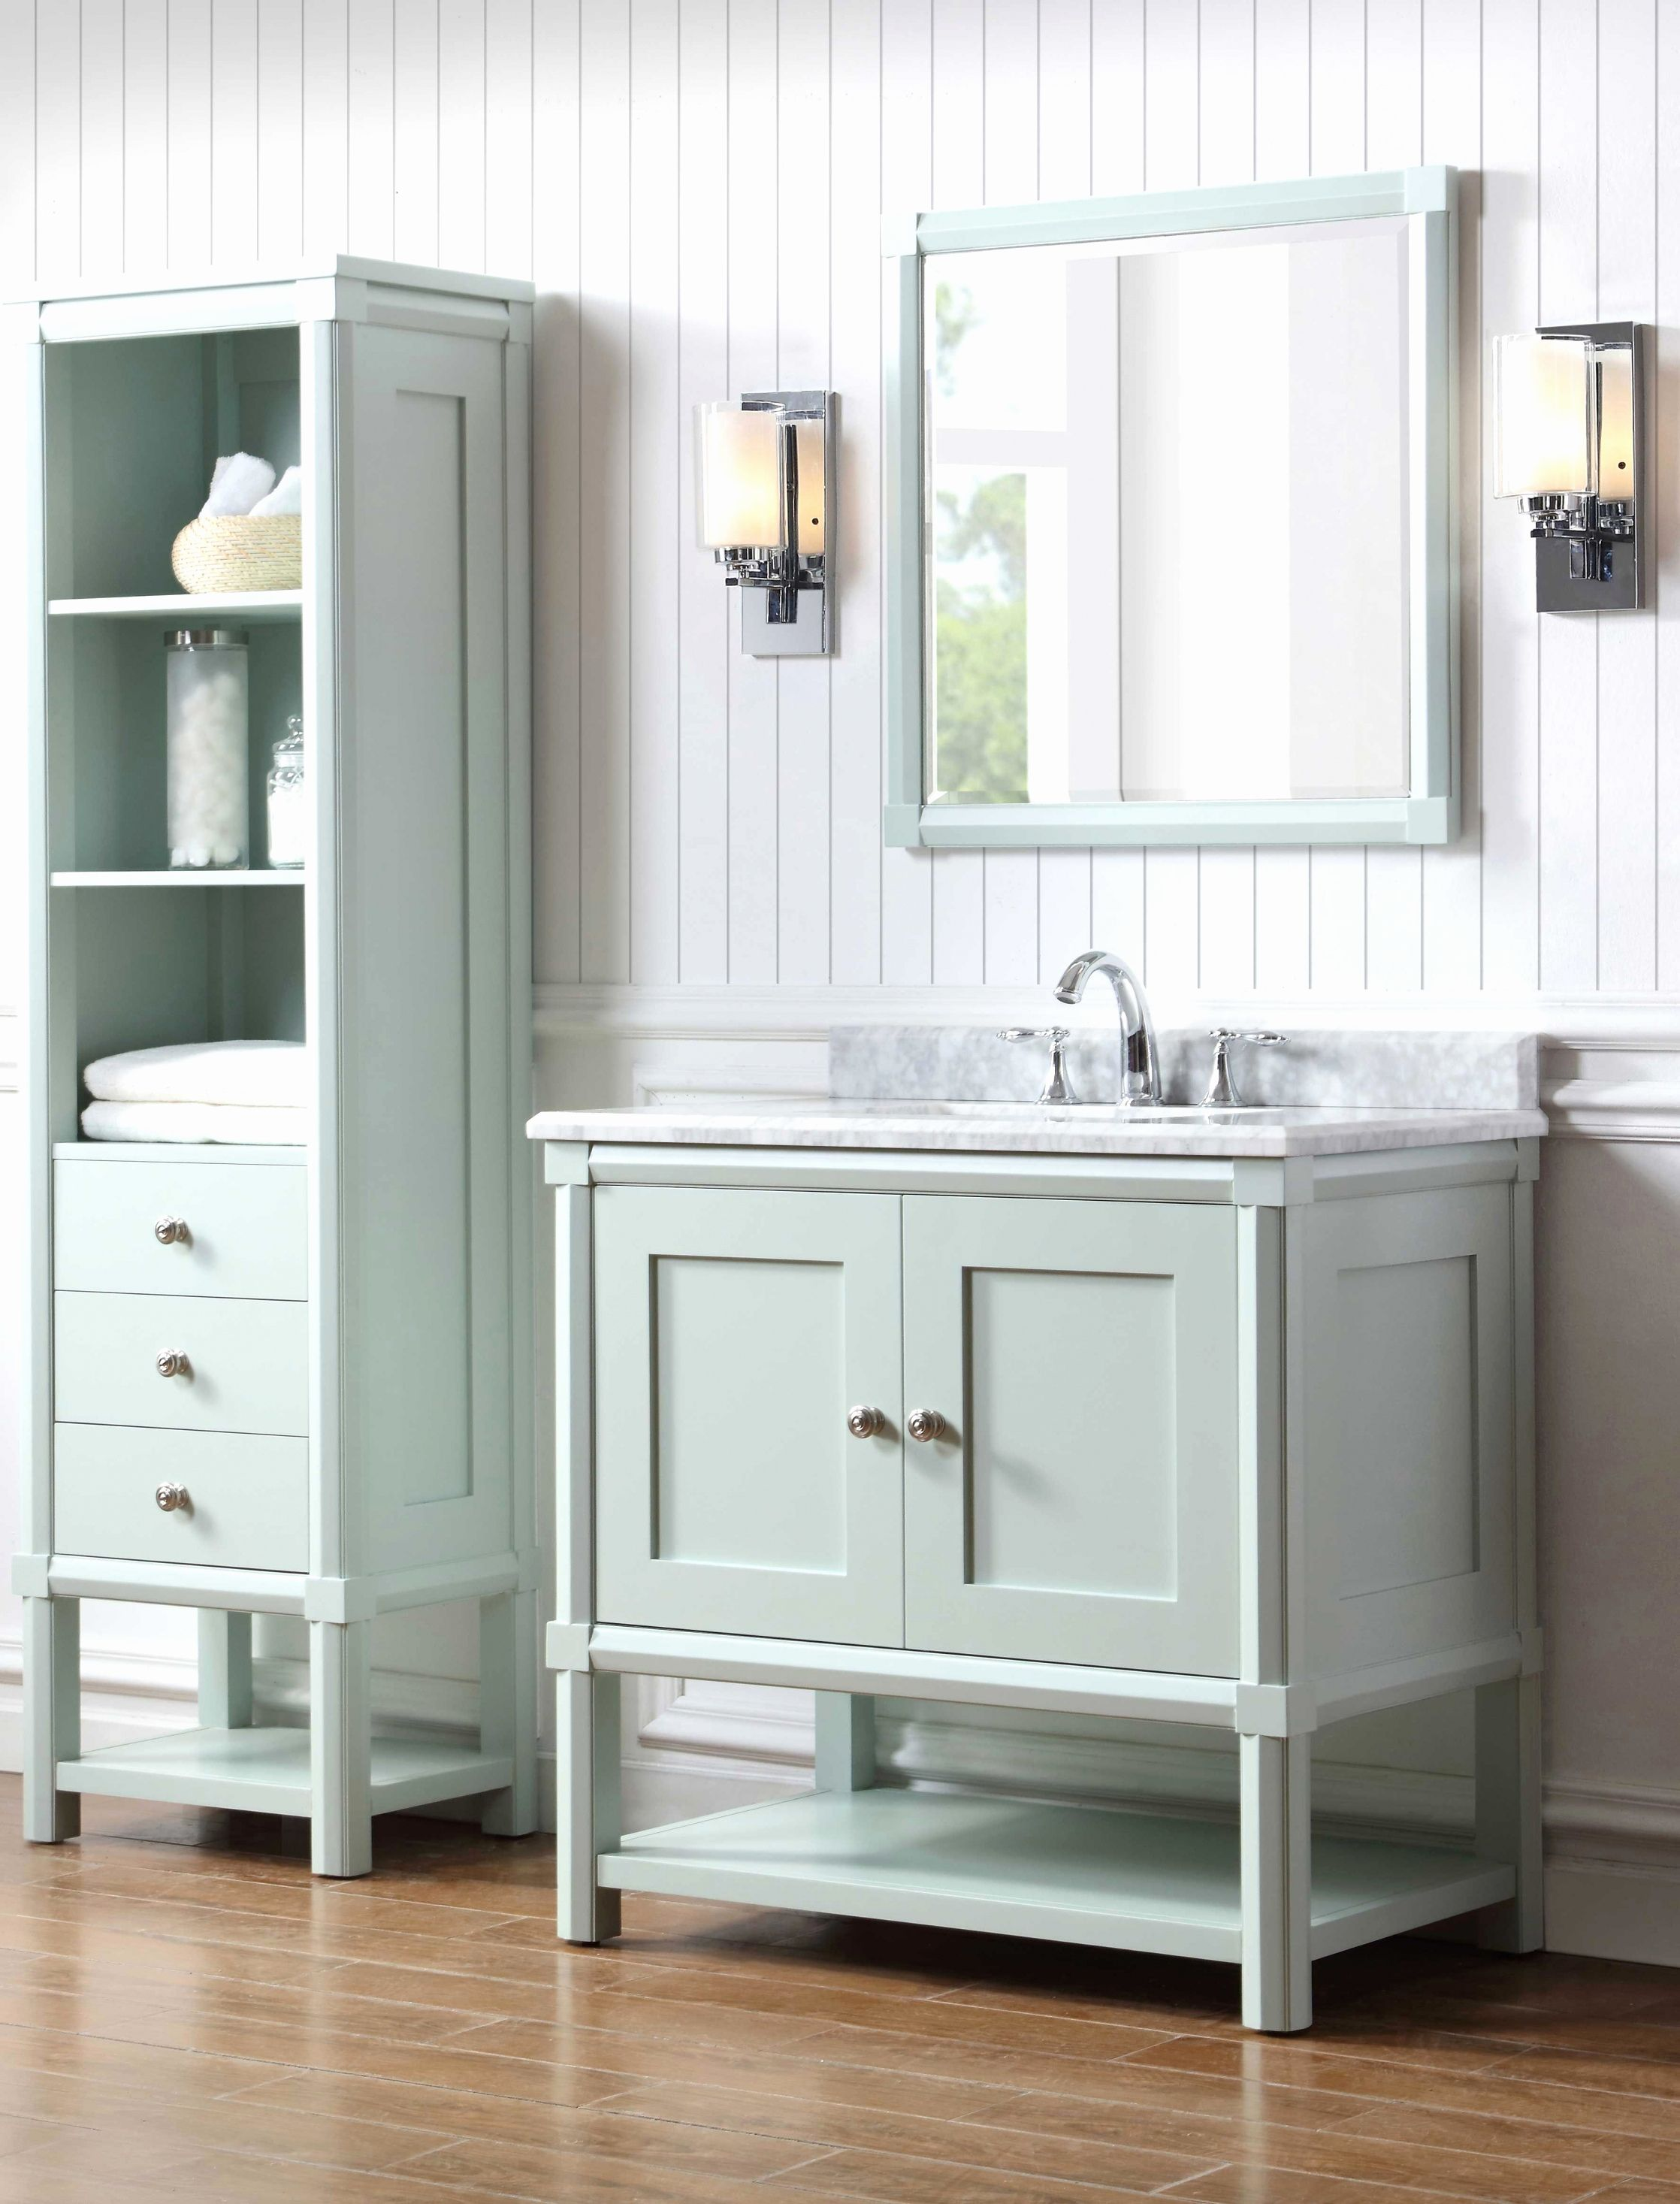 12 Bathroom Vanity Ideas for Your Next Remodel #small #diy #double